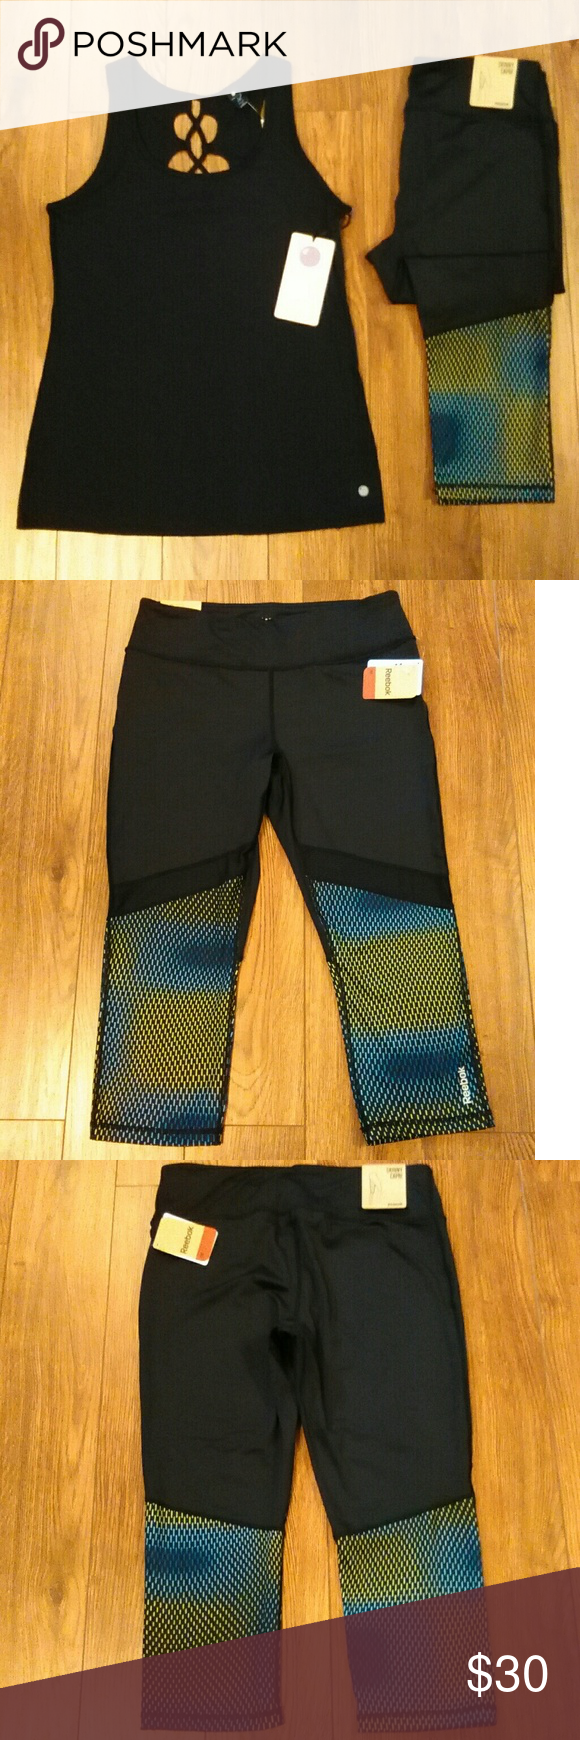 """NWT Reebok Skinny Athletic Capri Size L Reebok Skinny Athletic Work Out Capri Size L  Key Pocket  89% Polyester 12% Spandex  Aprox Measurements Taken Flat  Waist: 15"""" Rise: 9.5"""" Inseam: 20""""  Please Check Out My Other Items  #106  Top Sold Separately Reebok Pants Capris"""